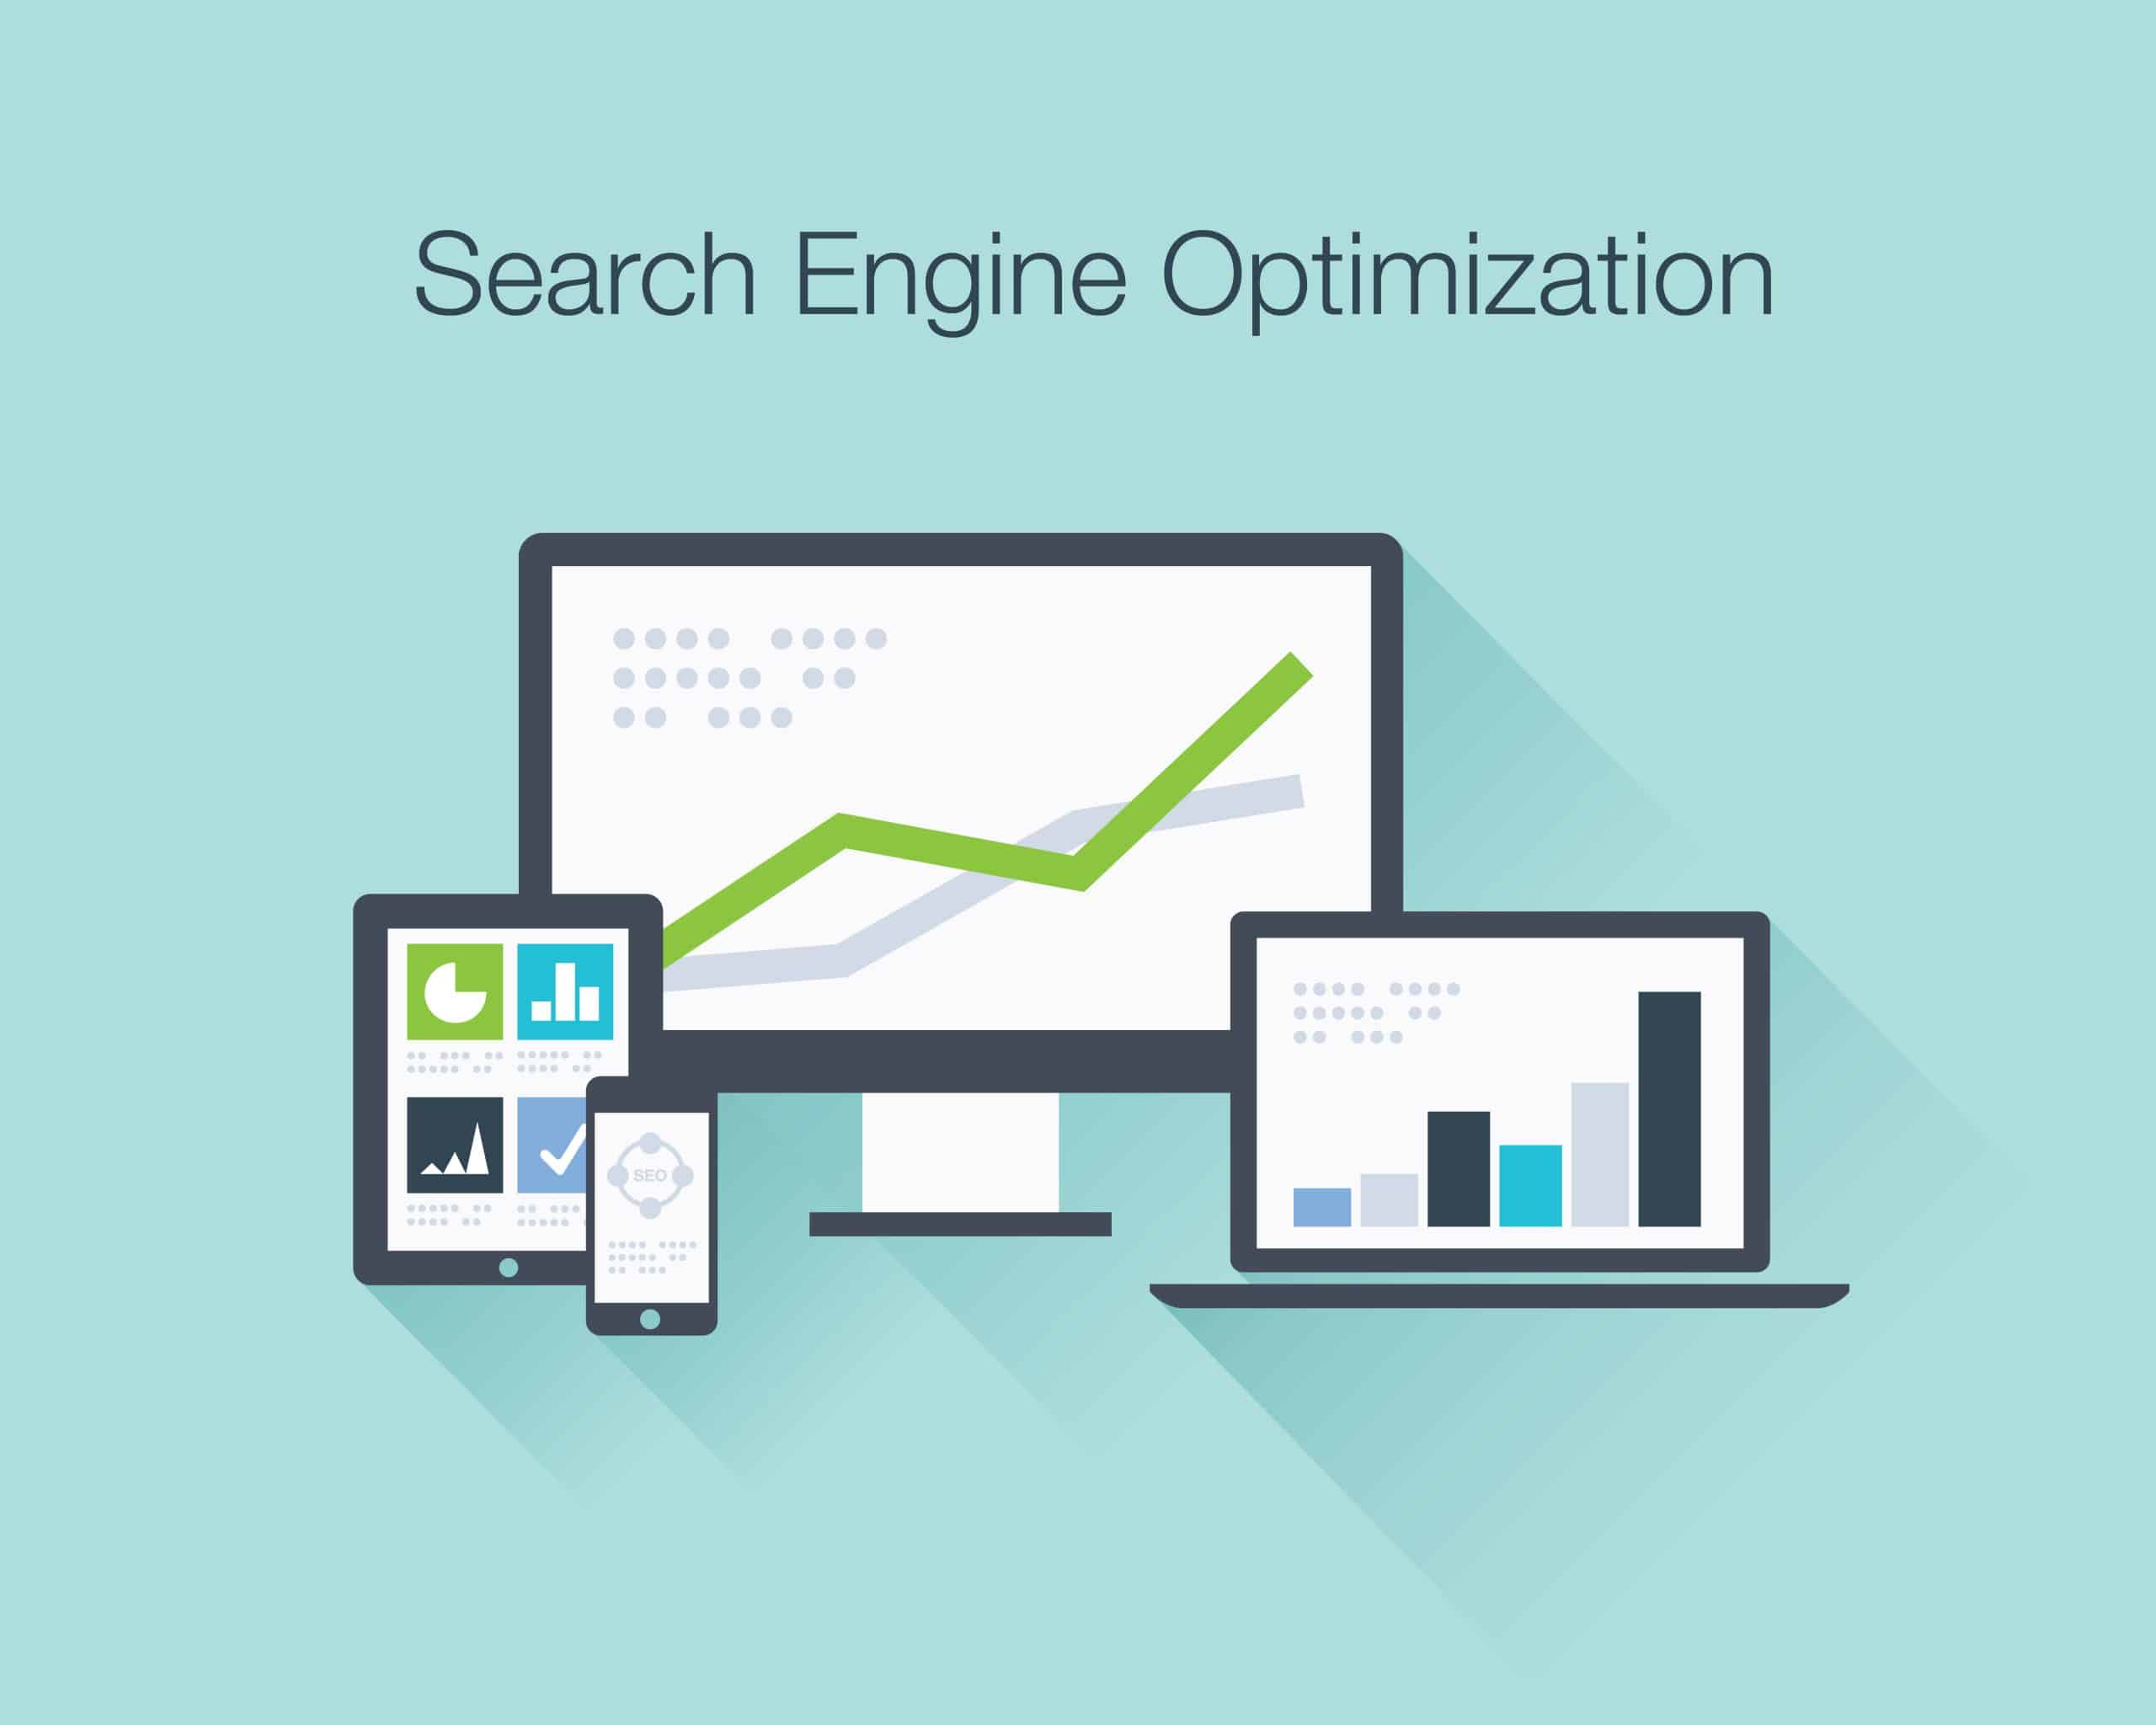 SEO services increase ROI